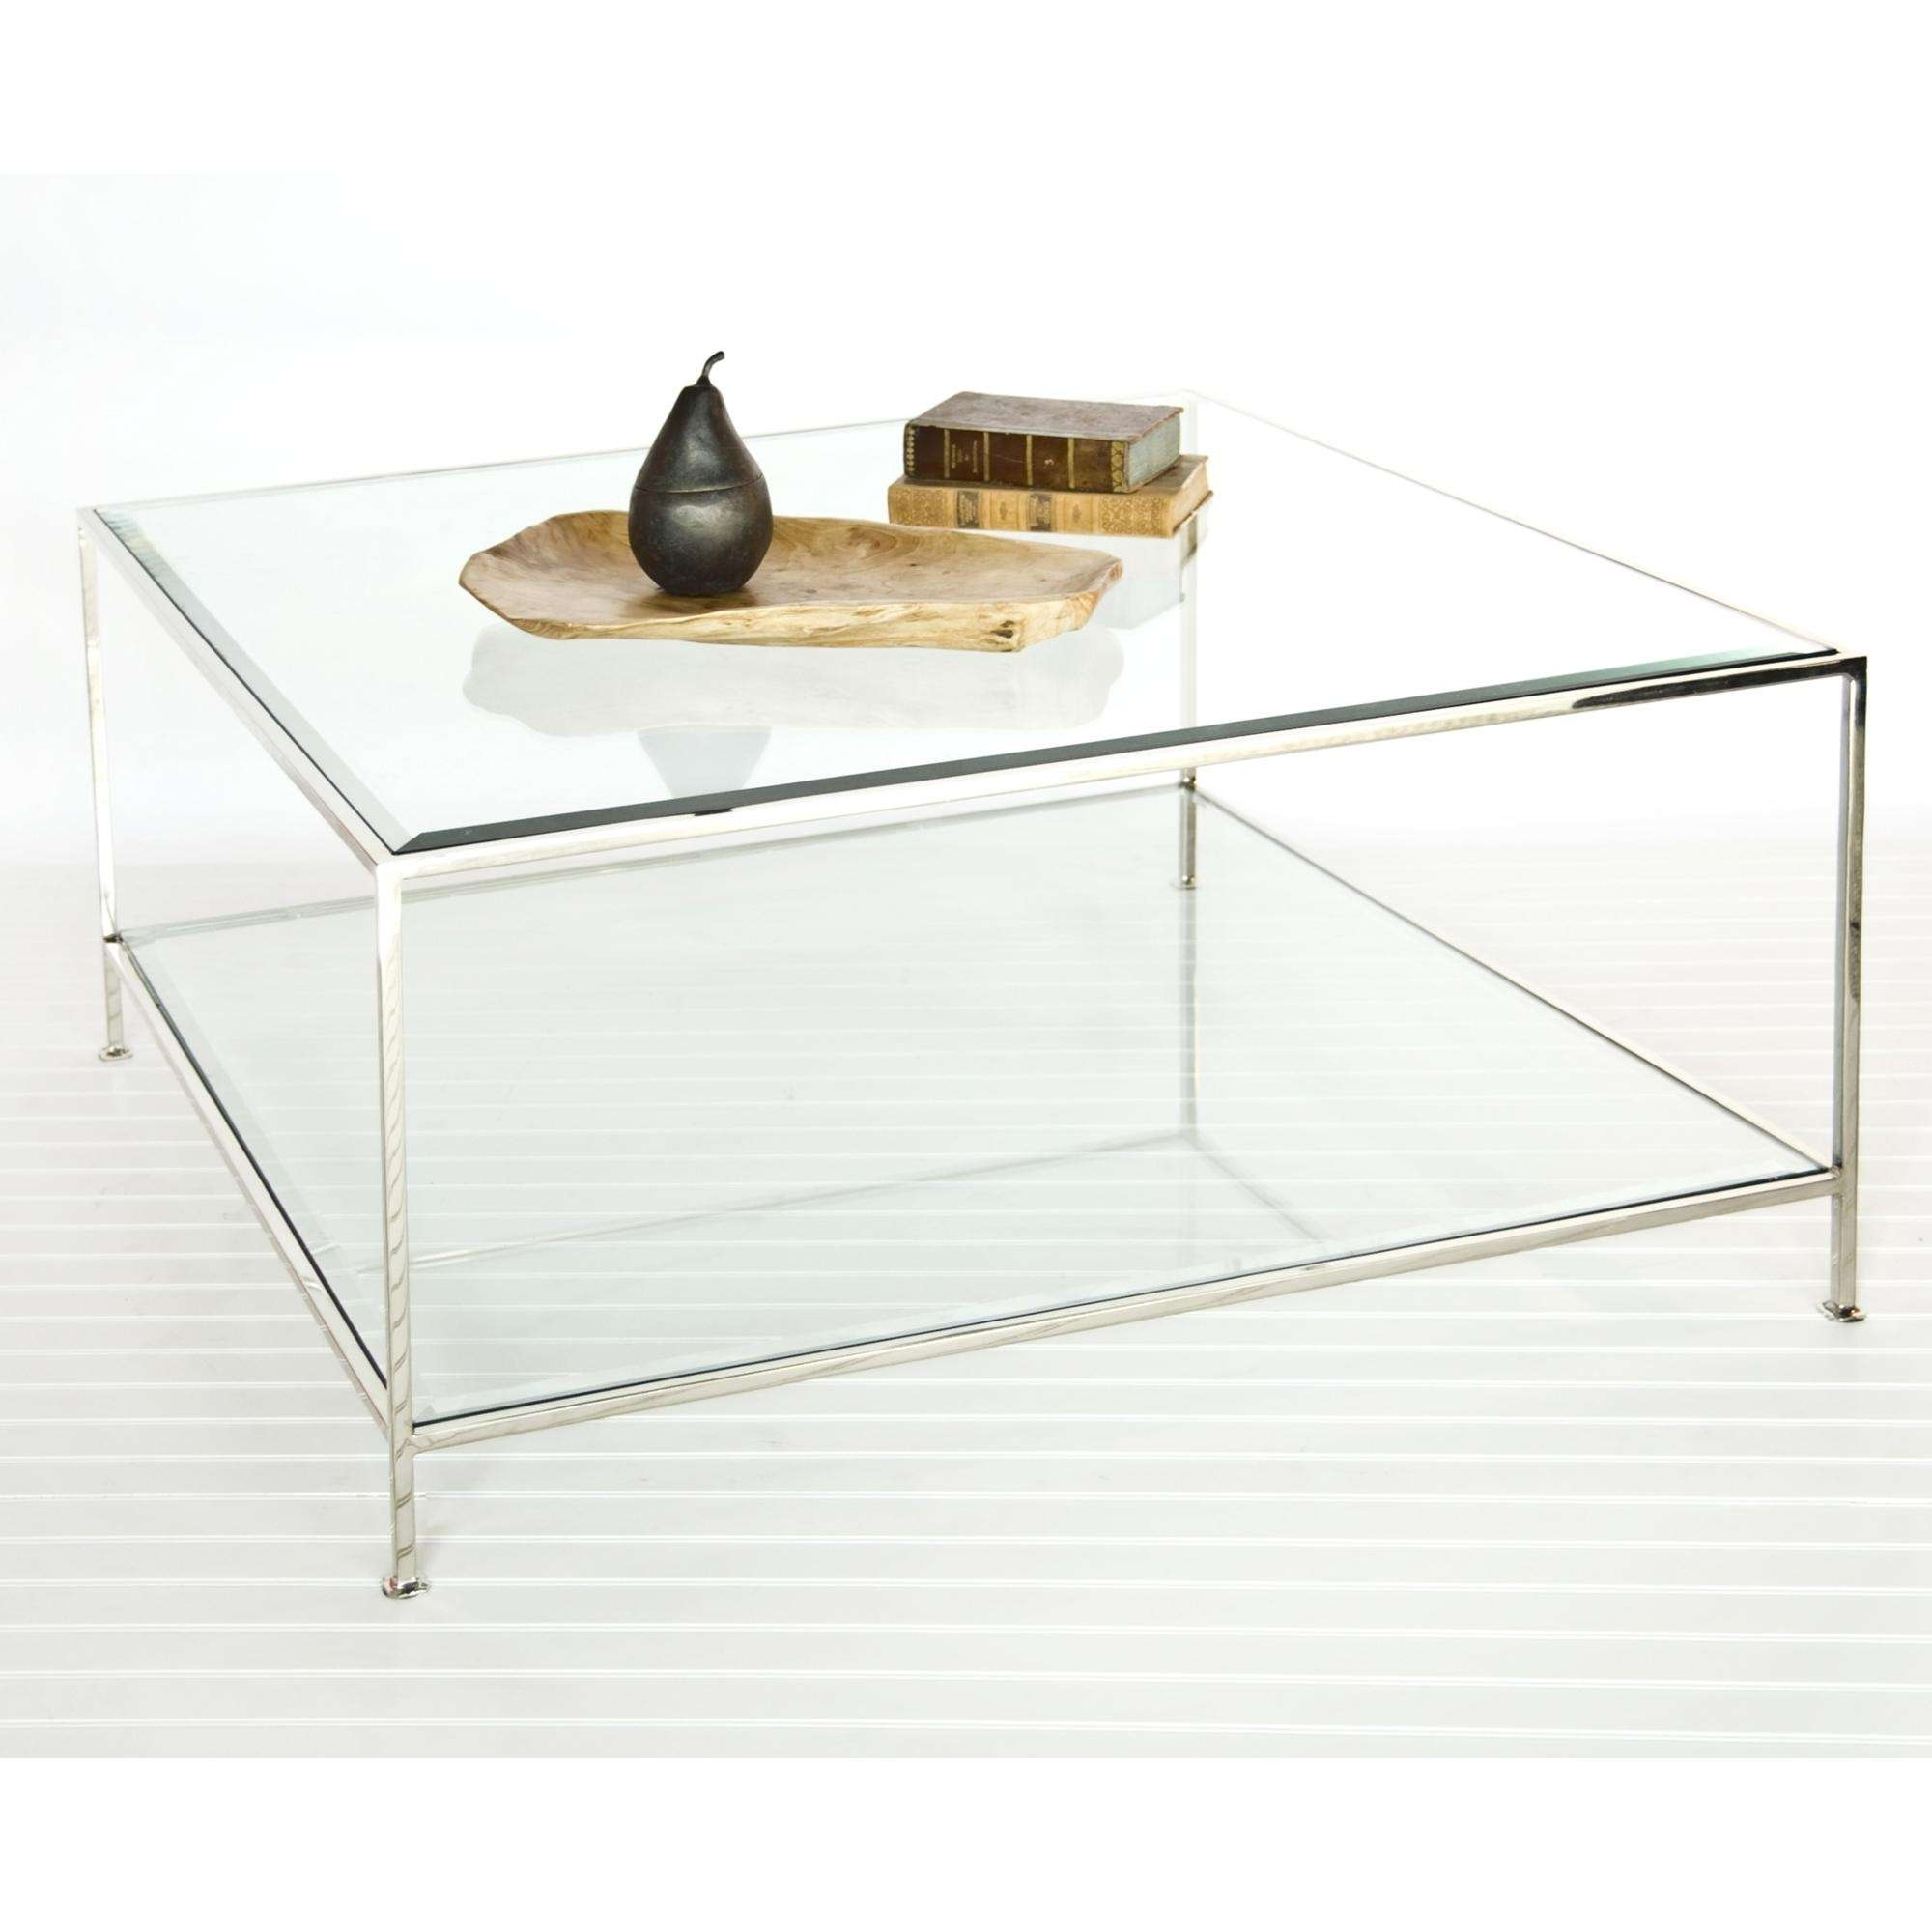 Large Square Glass Coffee Table – Glass Coffee Table Throughout Recent Metal Square Coffee Tables (View 12 of 20)